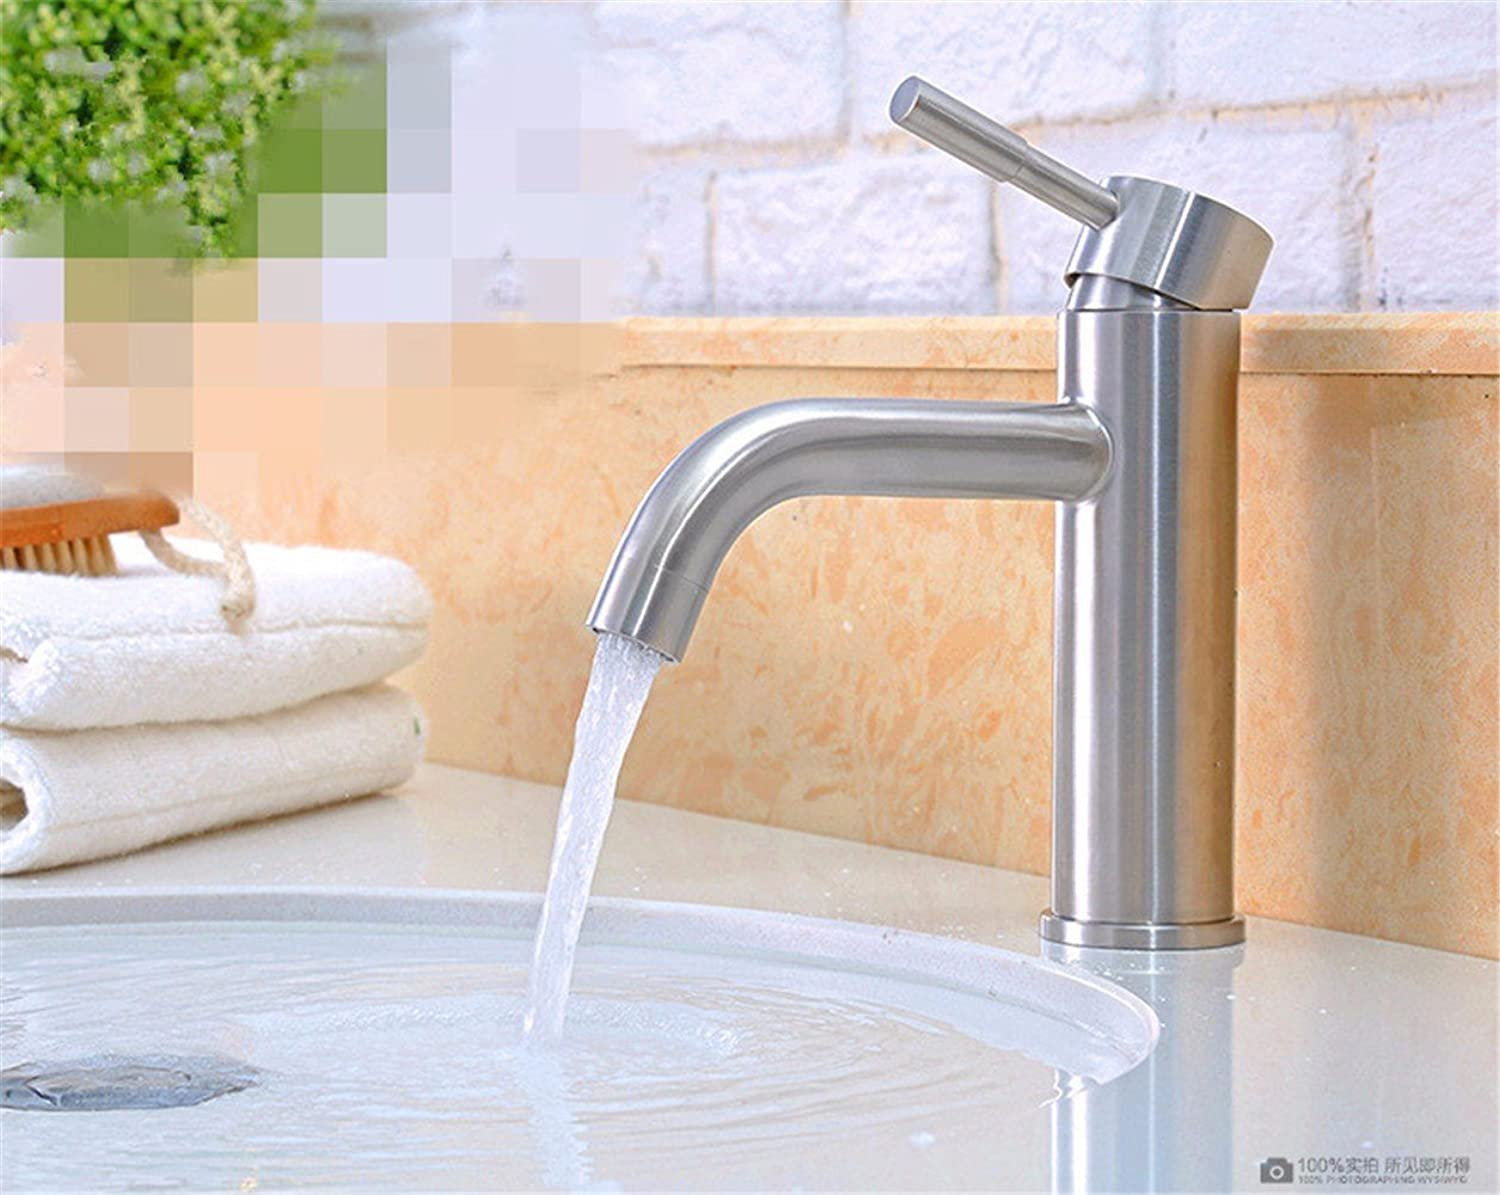 AQMMi Bathroom Sink Faucet Basin Mixer Tap Modern Single Hole Single Lever Hot and Cold Water Ceramic Valve Basin Sink Tap Bathroom Bar Faucet